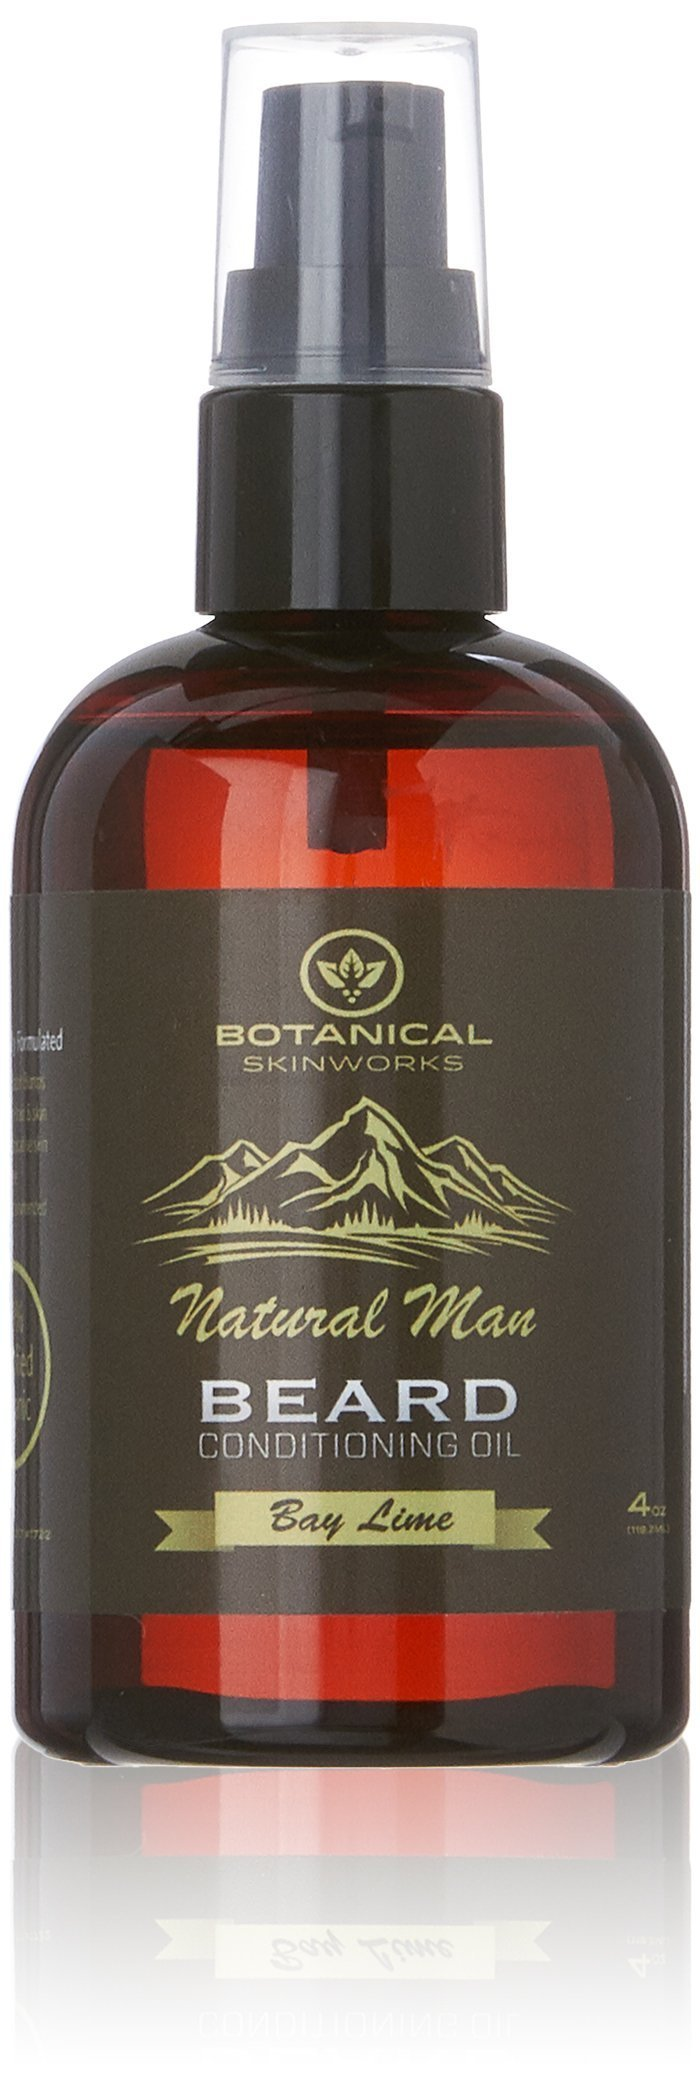 Botanical Skin Works Natural Man Bay Lime Beard Oil, All Natural Beard Conditioner, 4 oz.